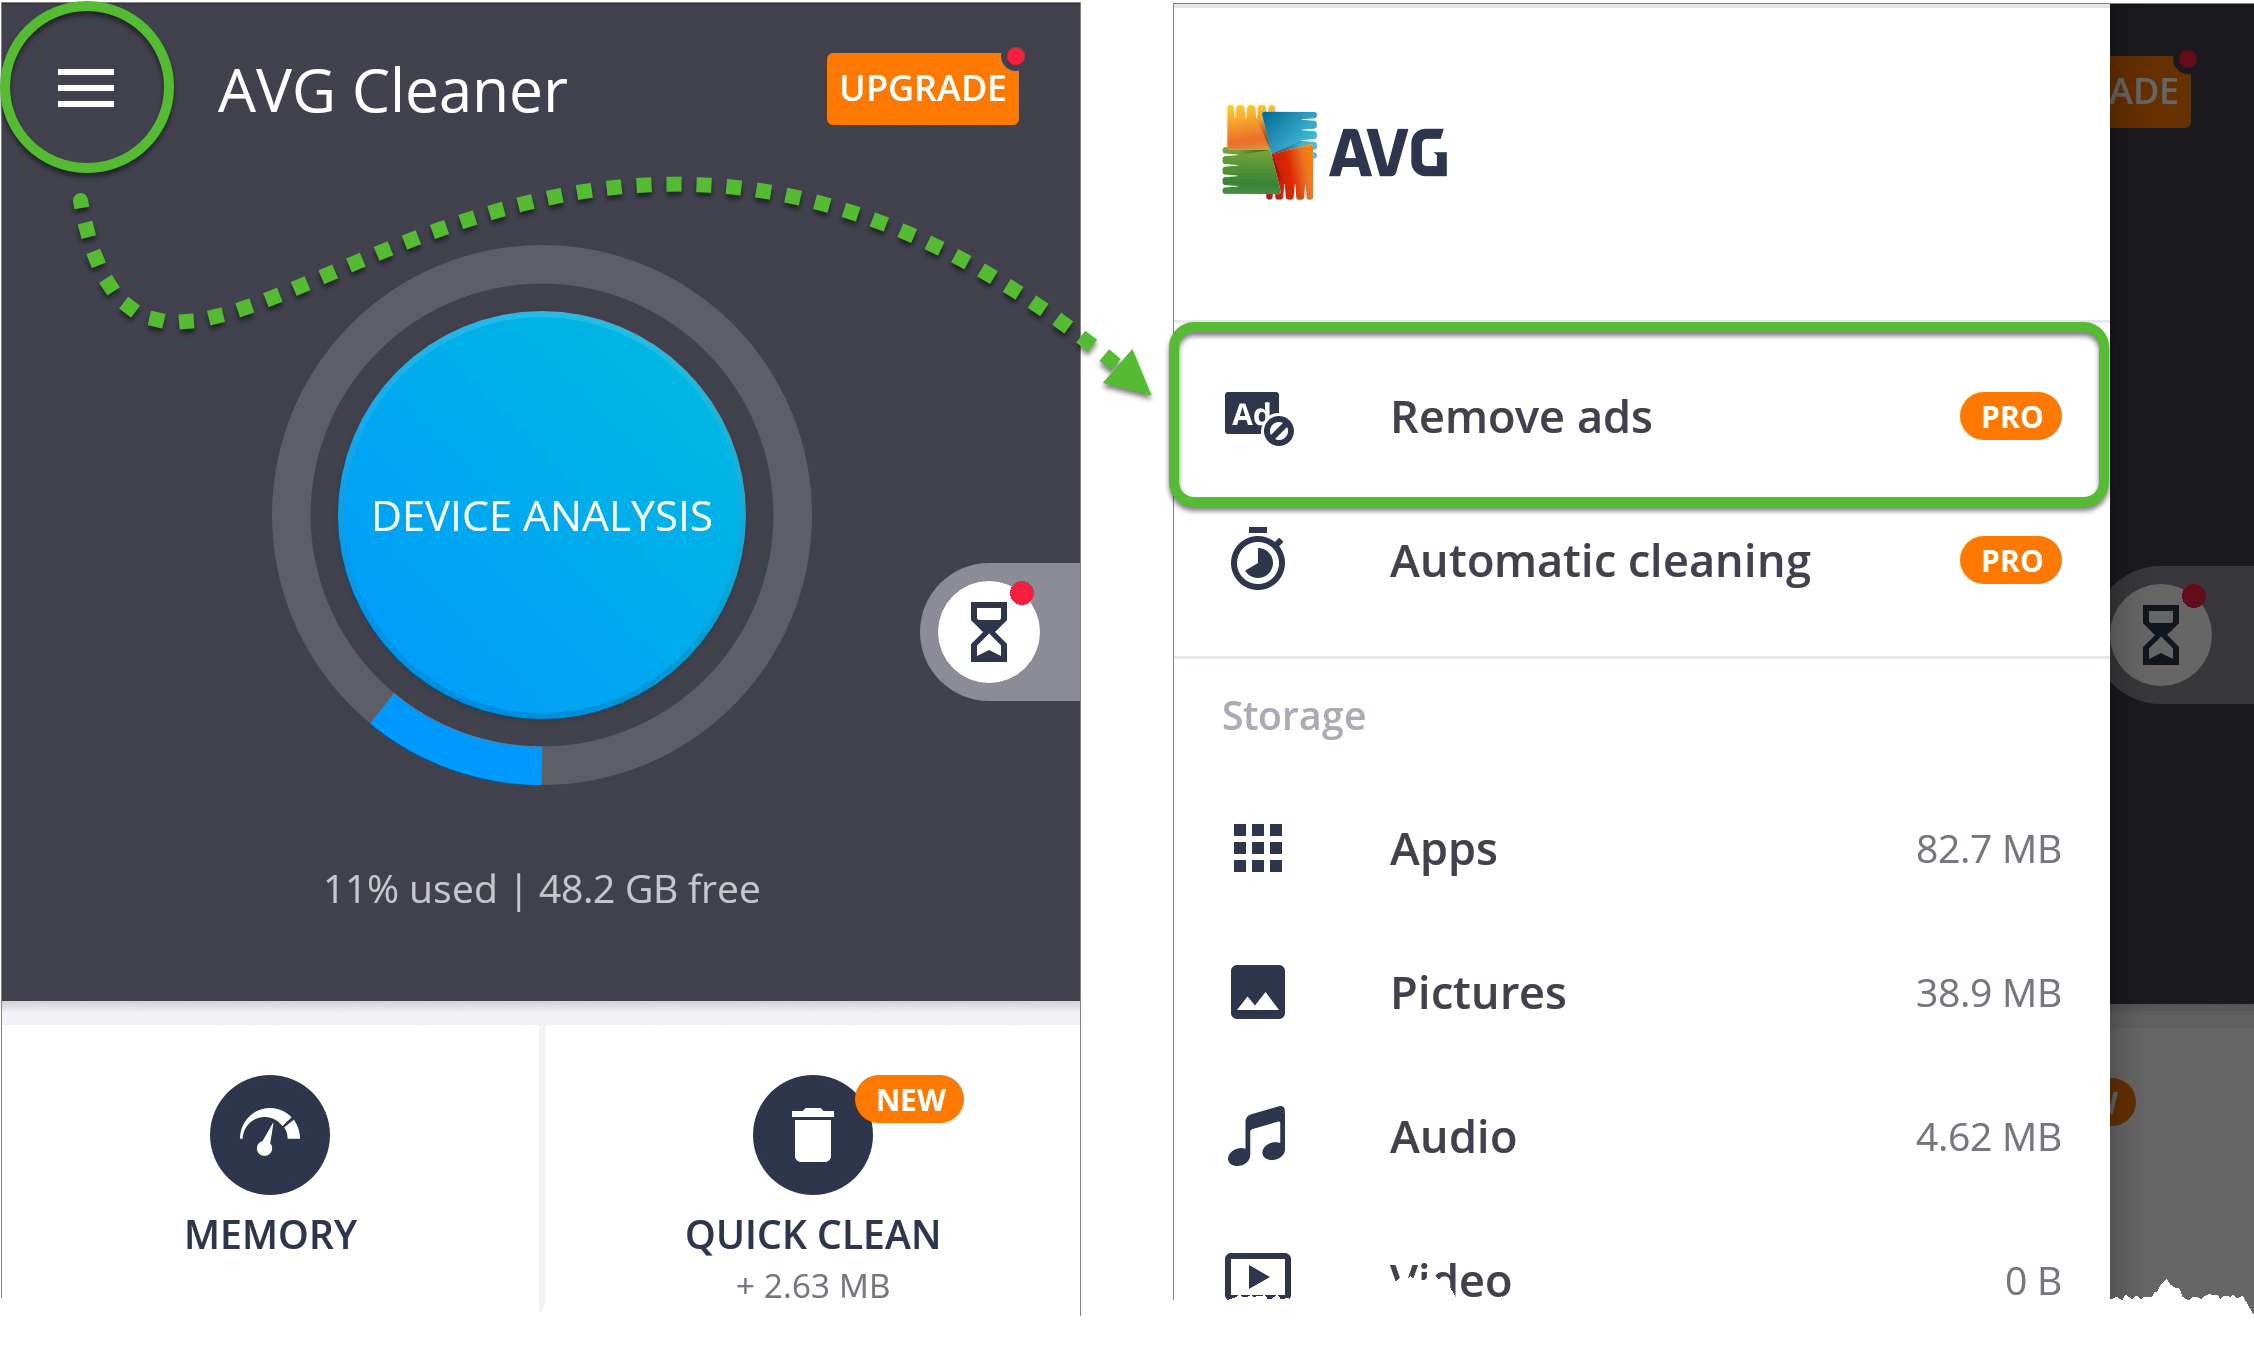 Activating AVG Cleaner on Android | AVG Support